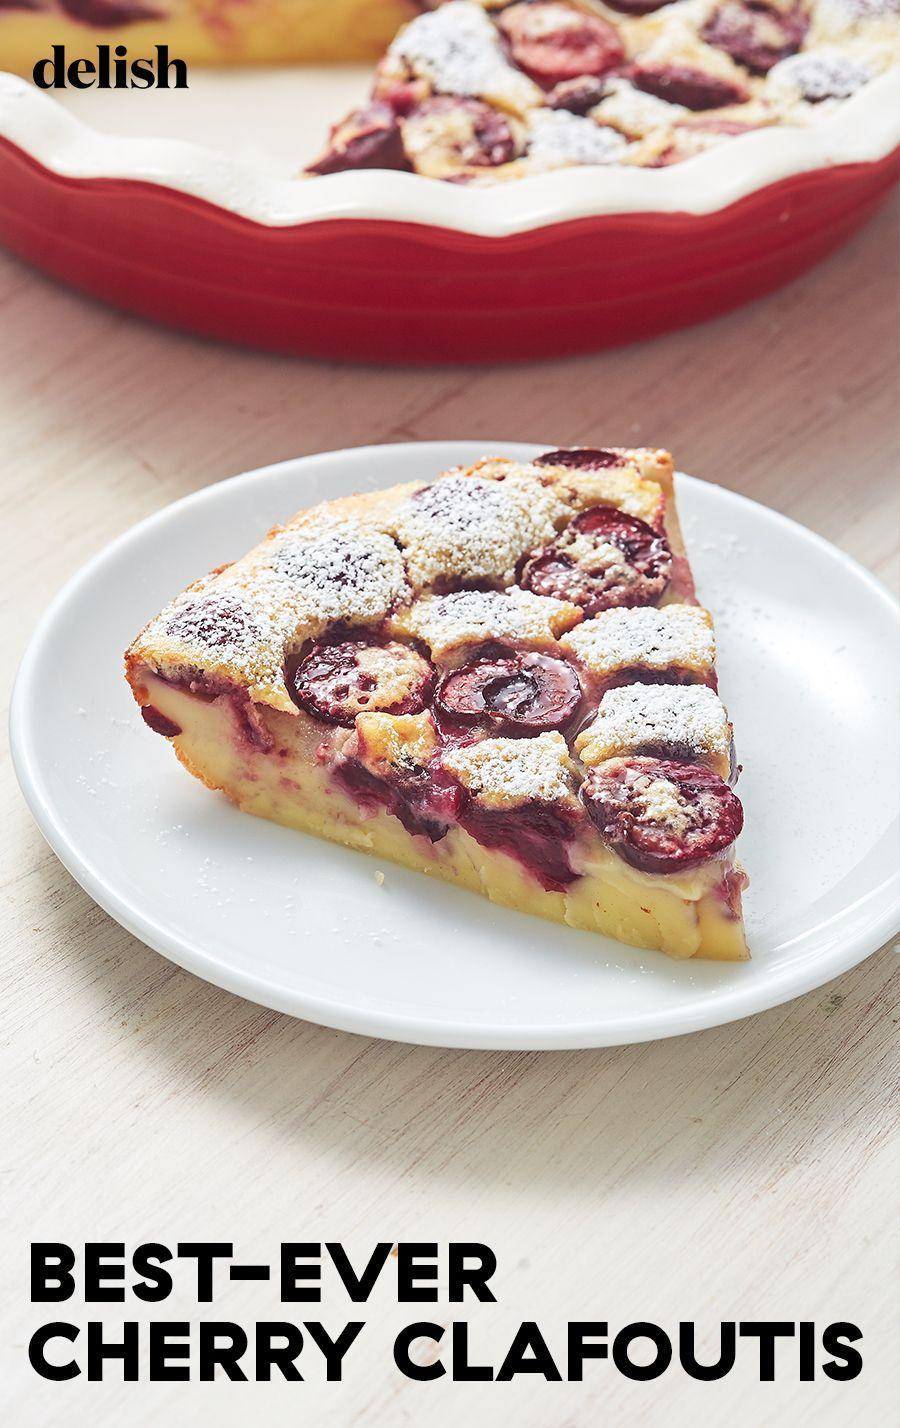 """<p>It's half flan, half cake, but 100 percent perfection. </p><p>Get the recipe from <a href=""""https://www.delish.com/cooking/recipe-ideas/a28109110/cherry-clafoutis-recipe/"""" rel=""""nofollow noopener"""" target=""""_blank"""" data-ylk=""""slk:Delish"""" class=""""link rapid-noclick-resp"""">Delish</a>.</p>"""